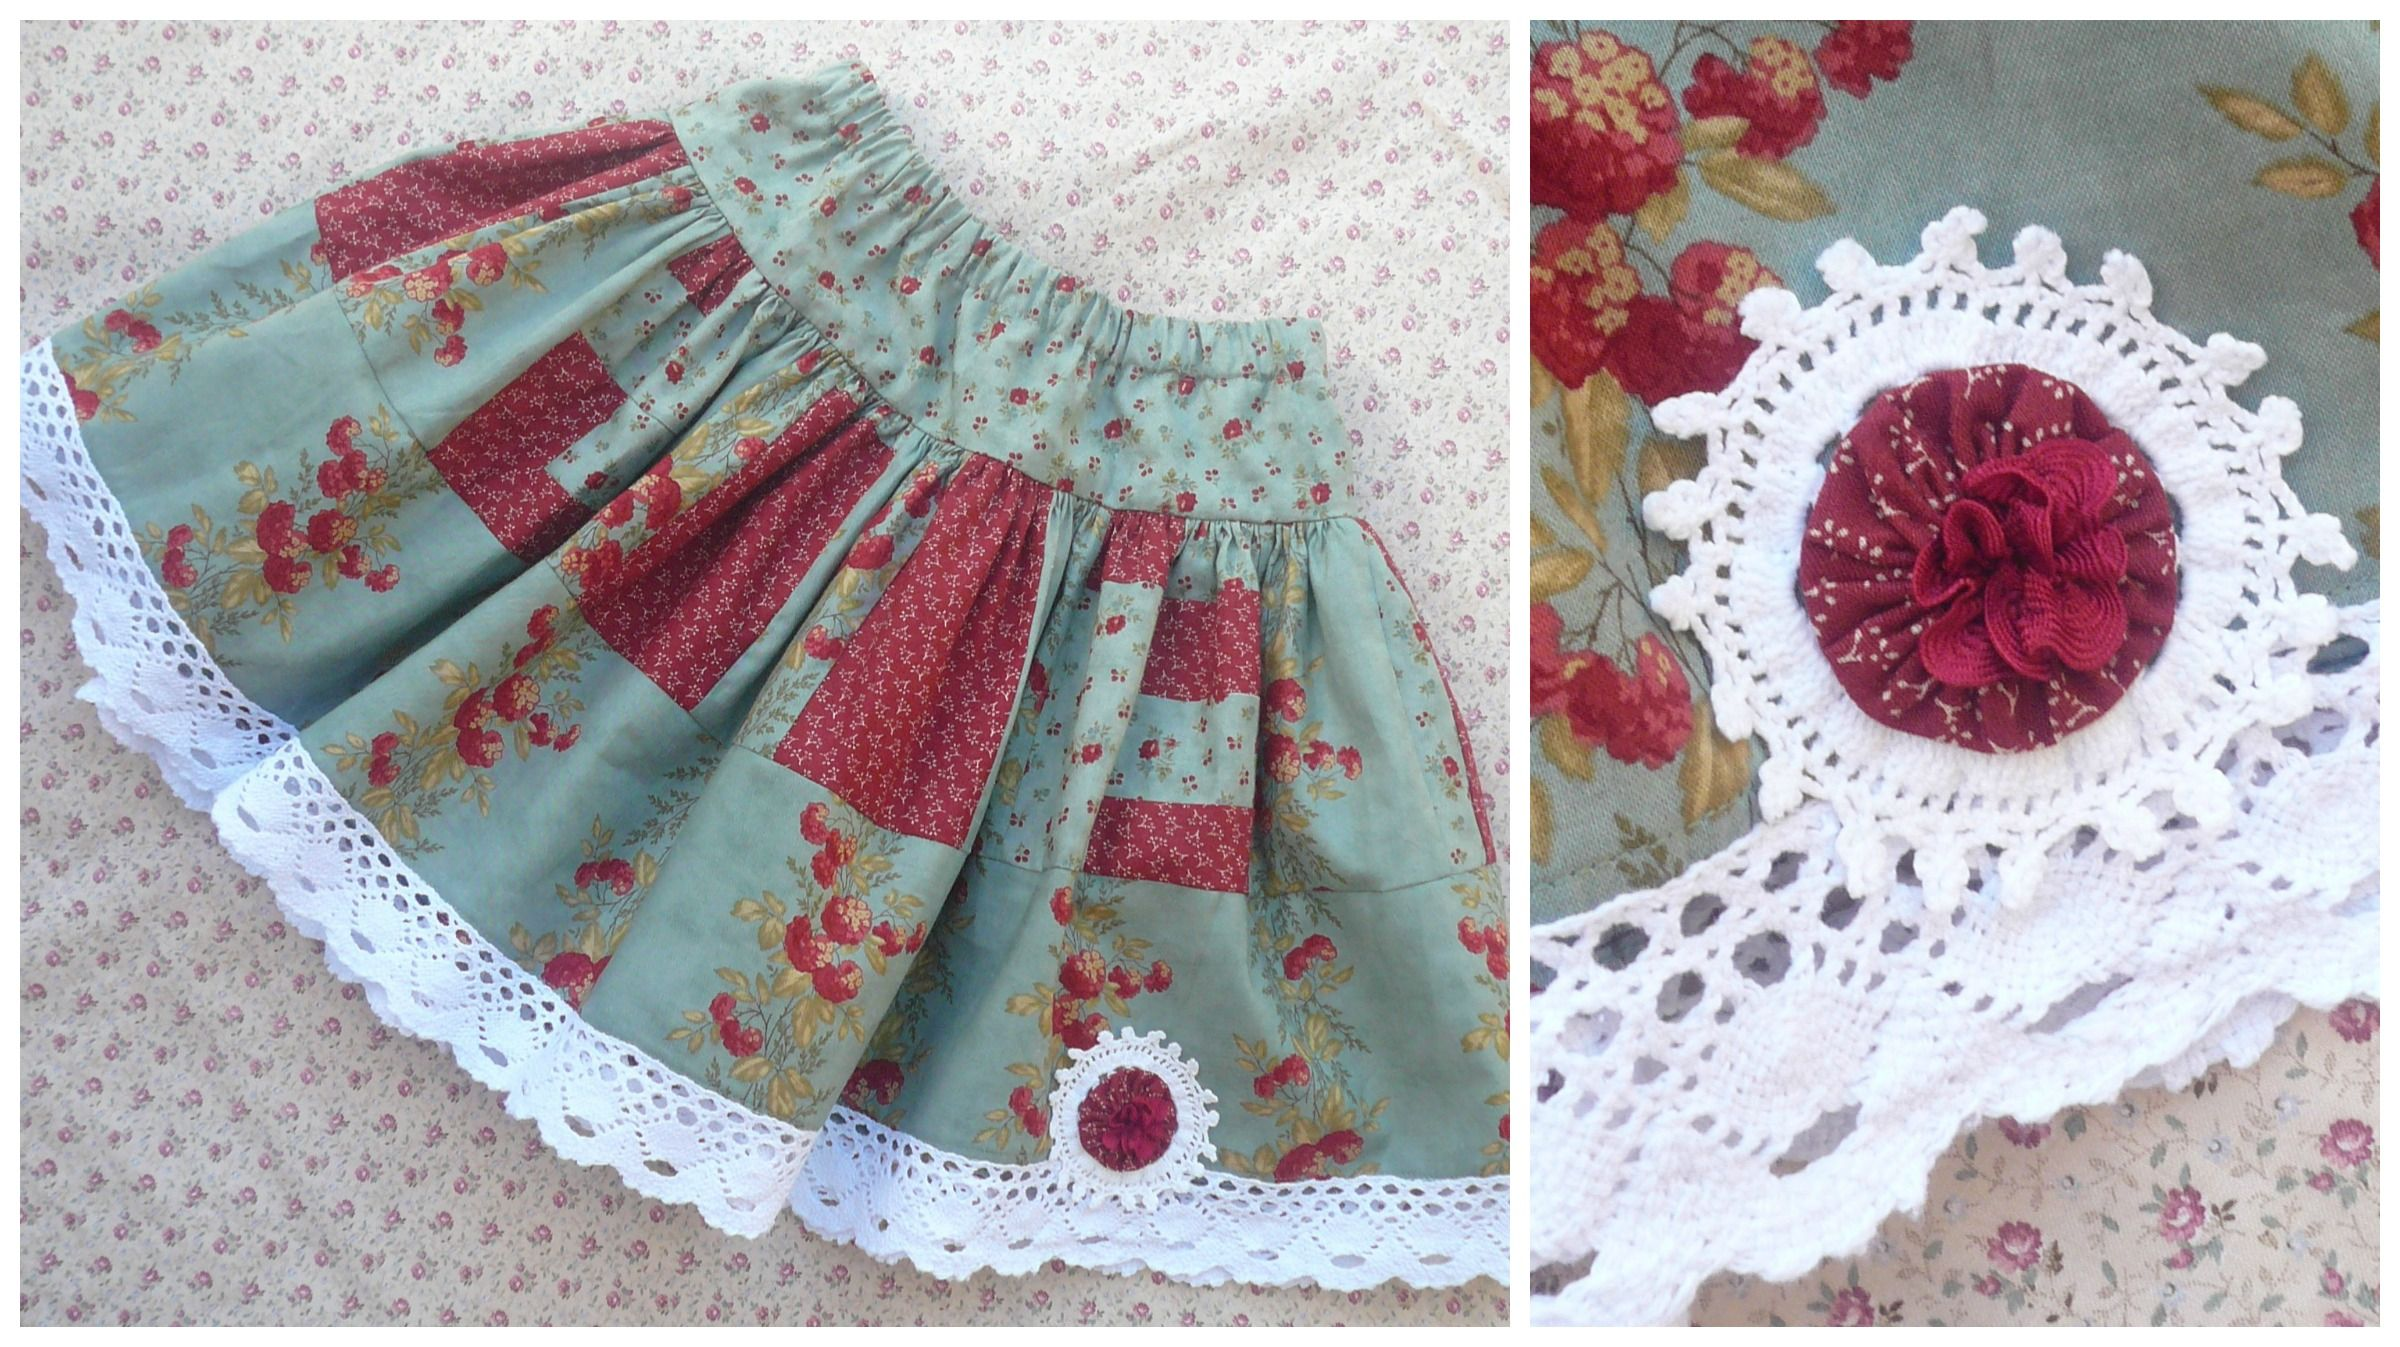 sew together left over fabric pieces to make a twirly skirt a variation of the @Lynn Helms Designs pattern.